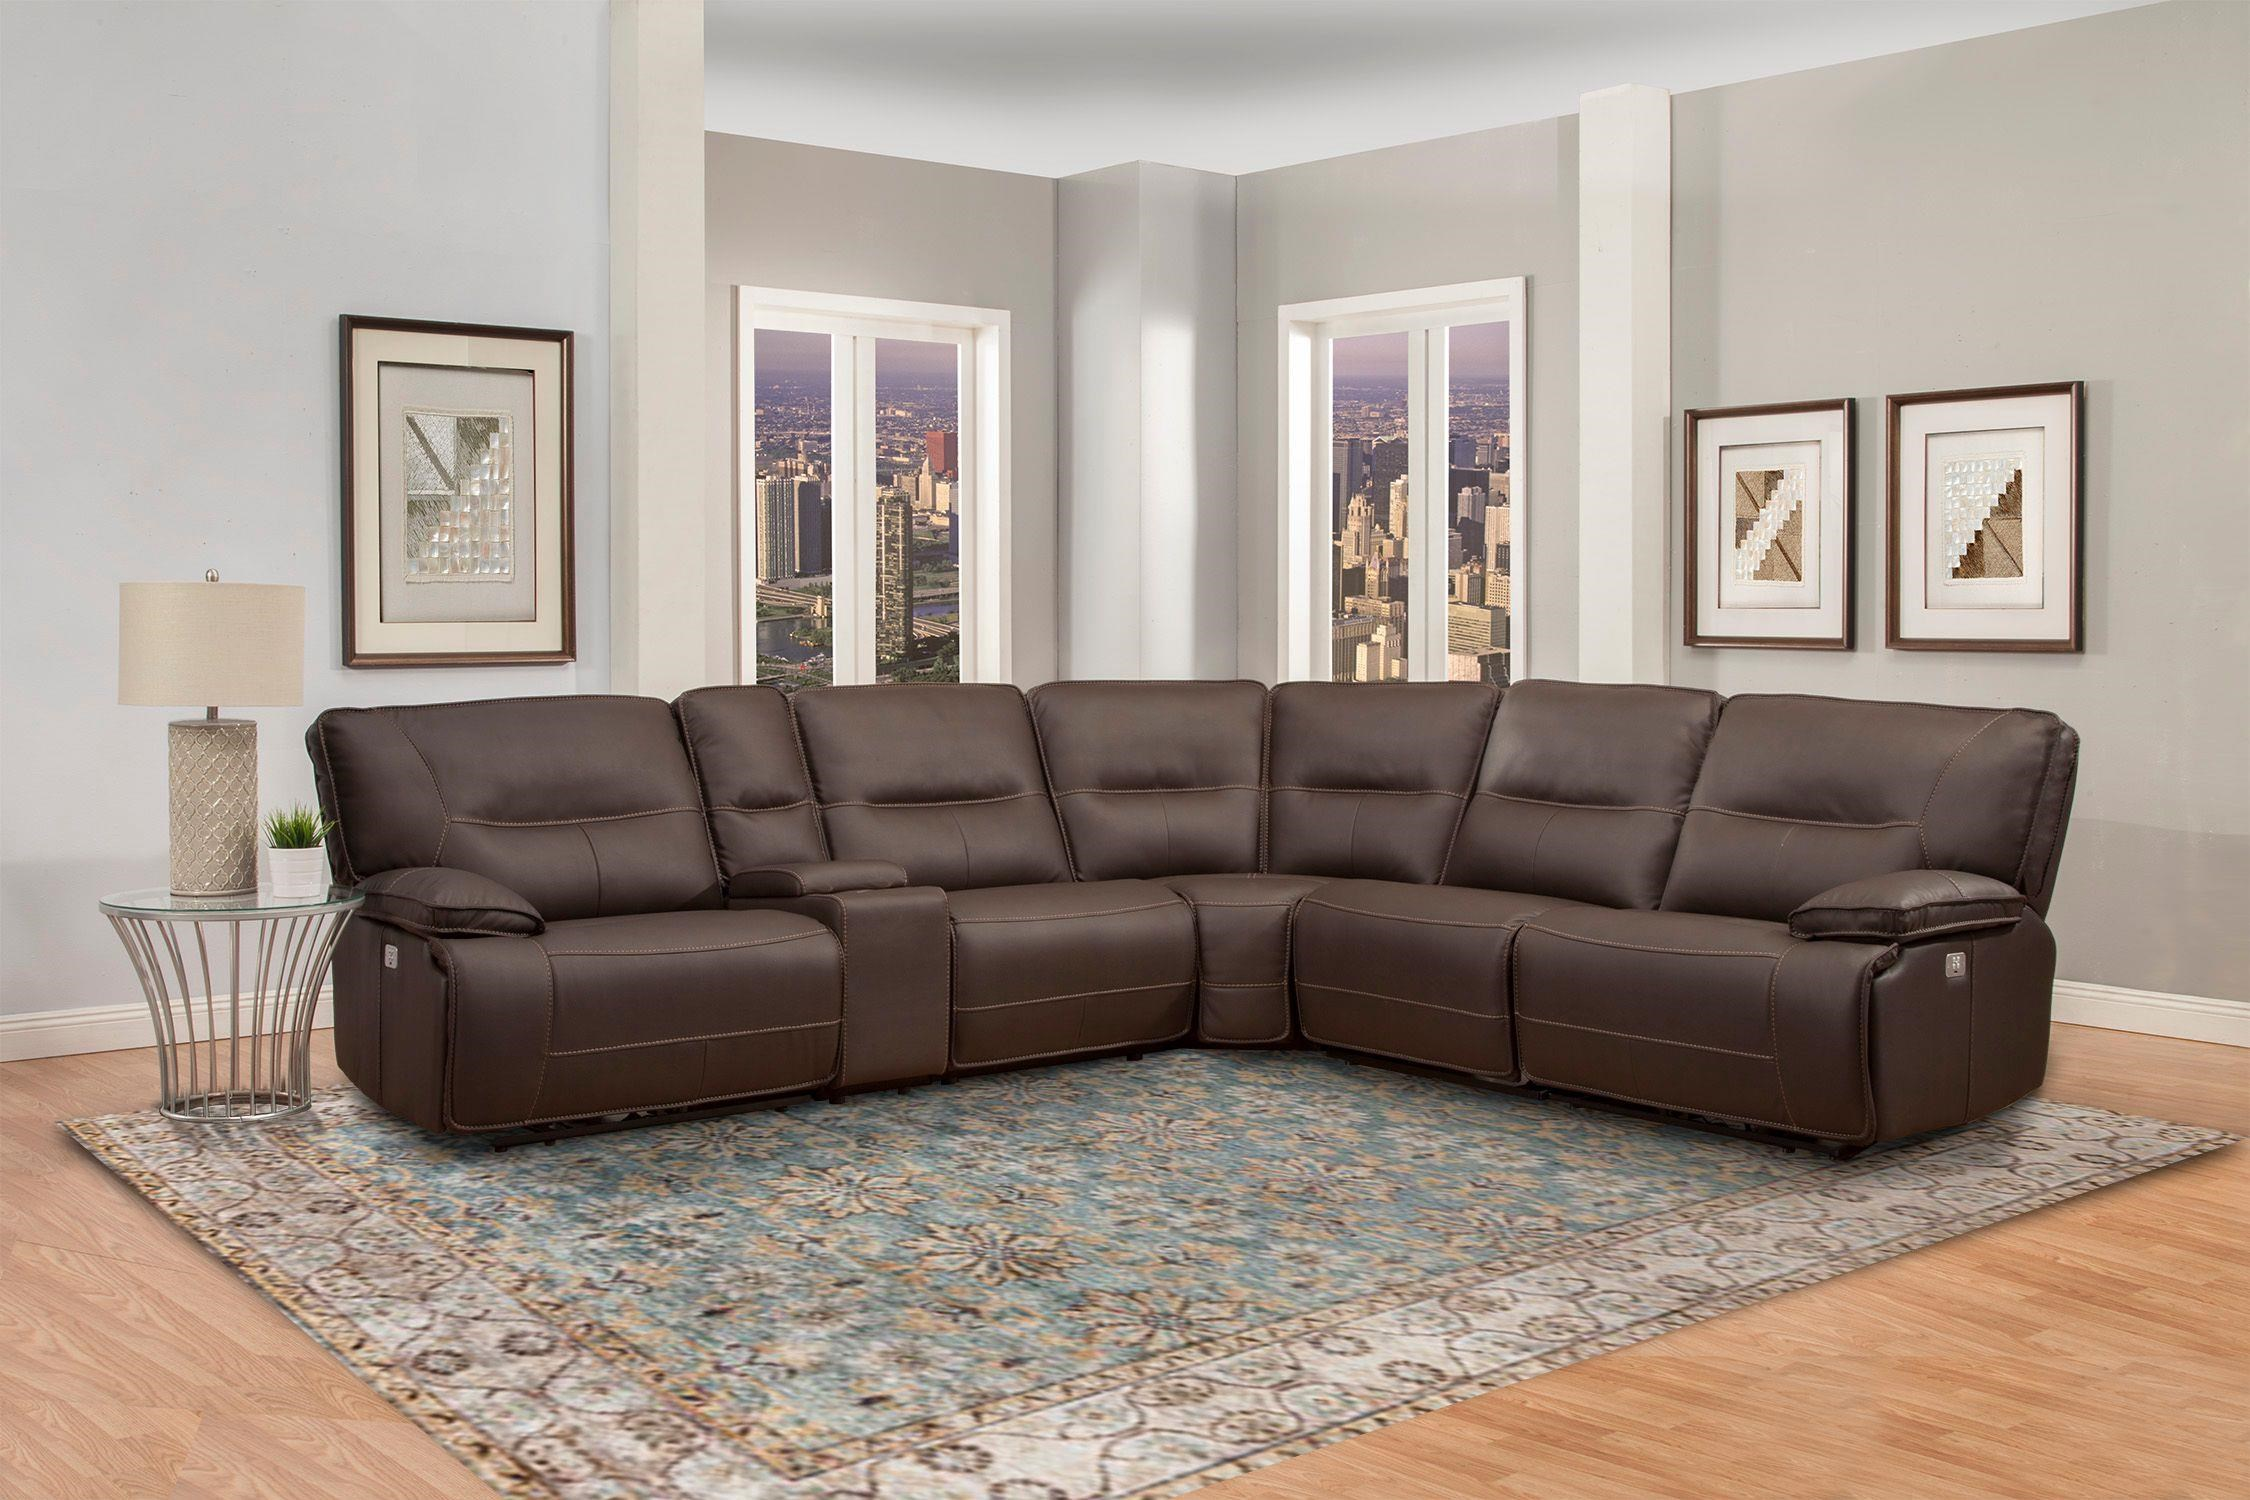 6PC POWER RECLINING SECTIONAL SOFA